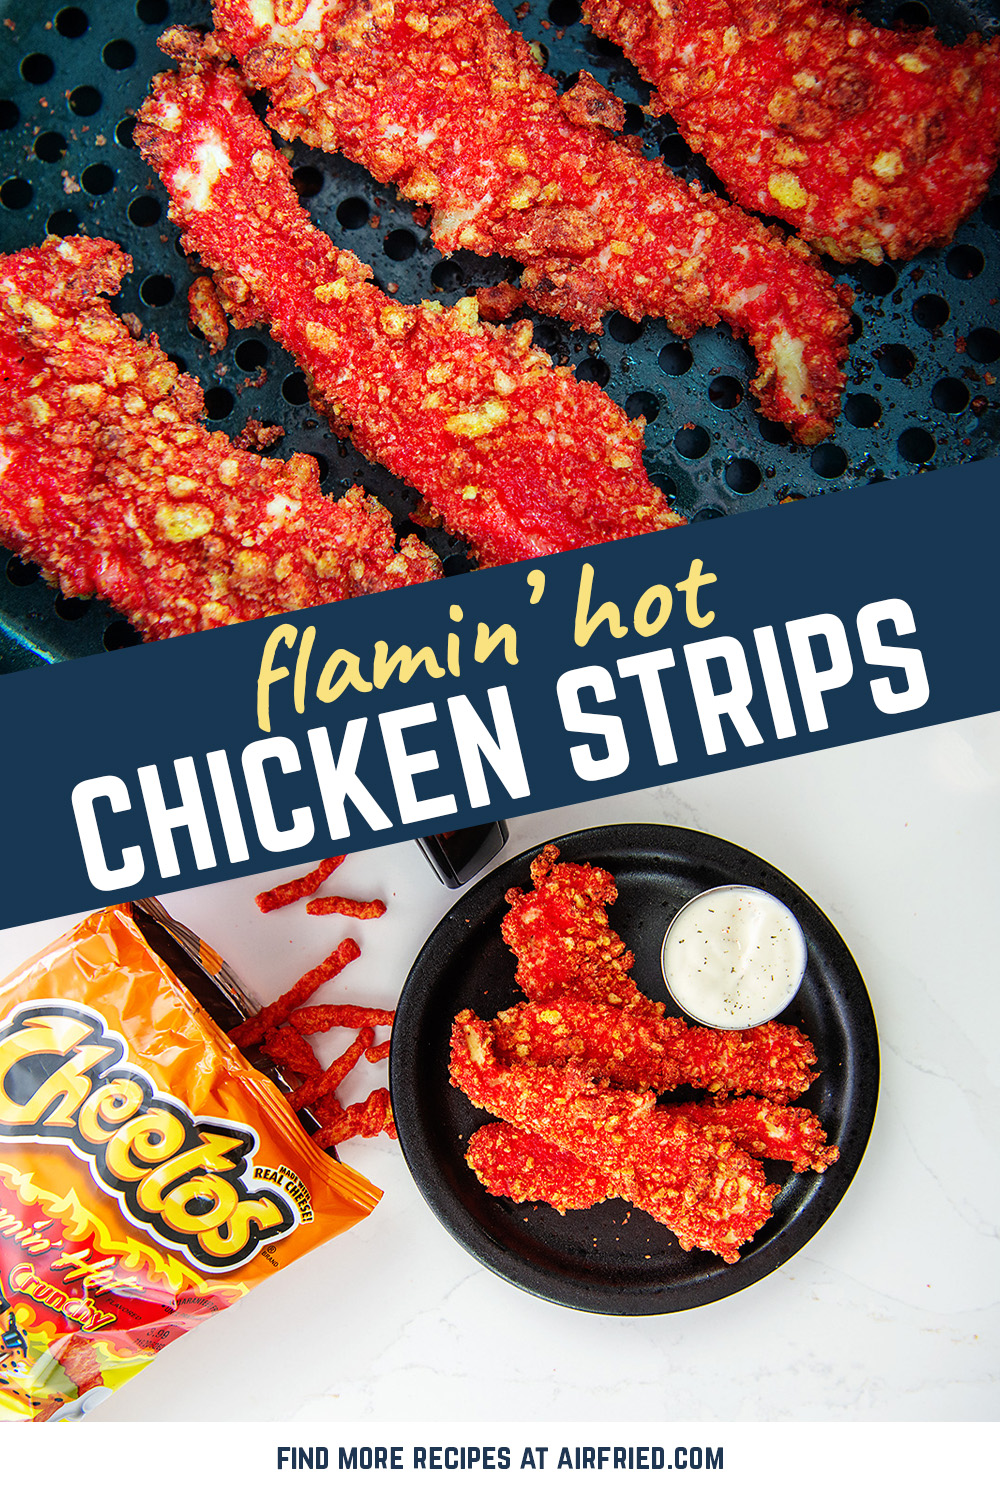 Favorite snack with my favorite lunch!  These chicken strips have a bit of spice and a great crunch in every bite! #flaminhotcheetos #chickentenders #airfryer